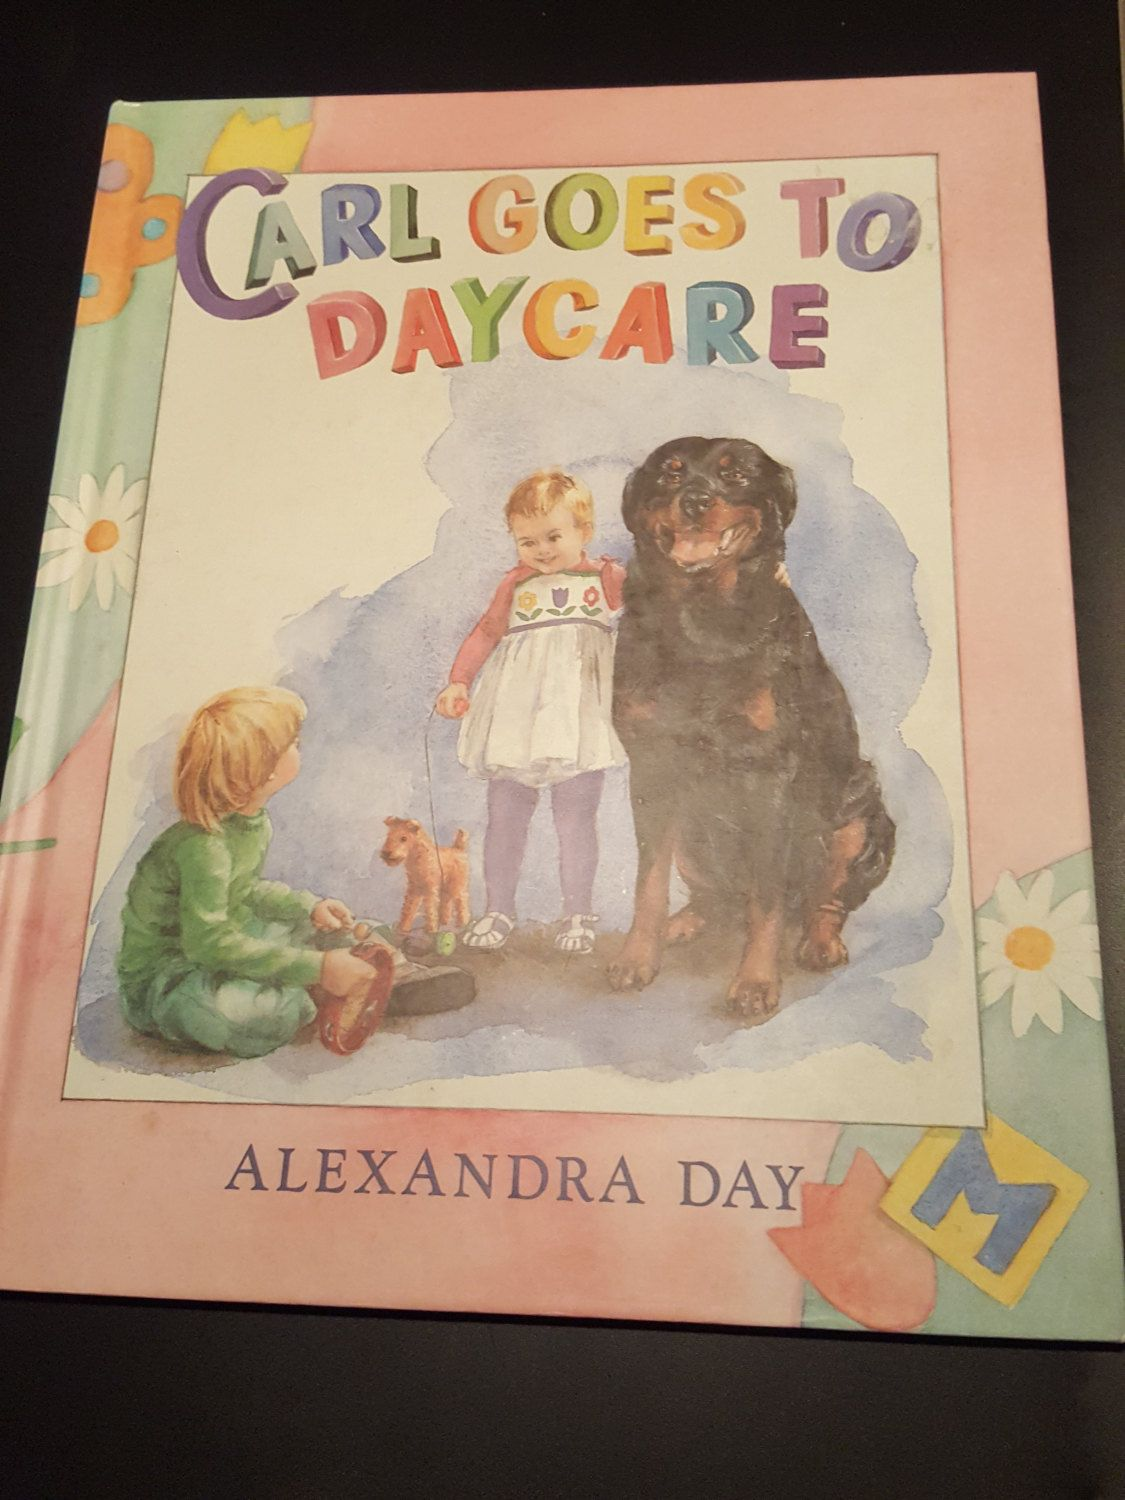 Carl goes to daycare by alexandra day hardcover book pet dog carl goes to daycare by alexandra day hardcover book pet dog rottweiler illustrated hardcover bookseaster giftpet negle Choice Image